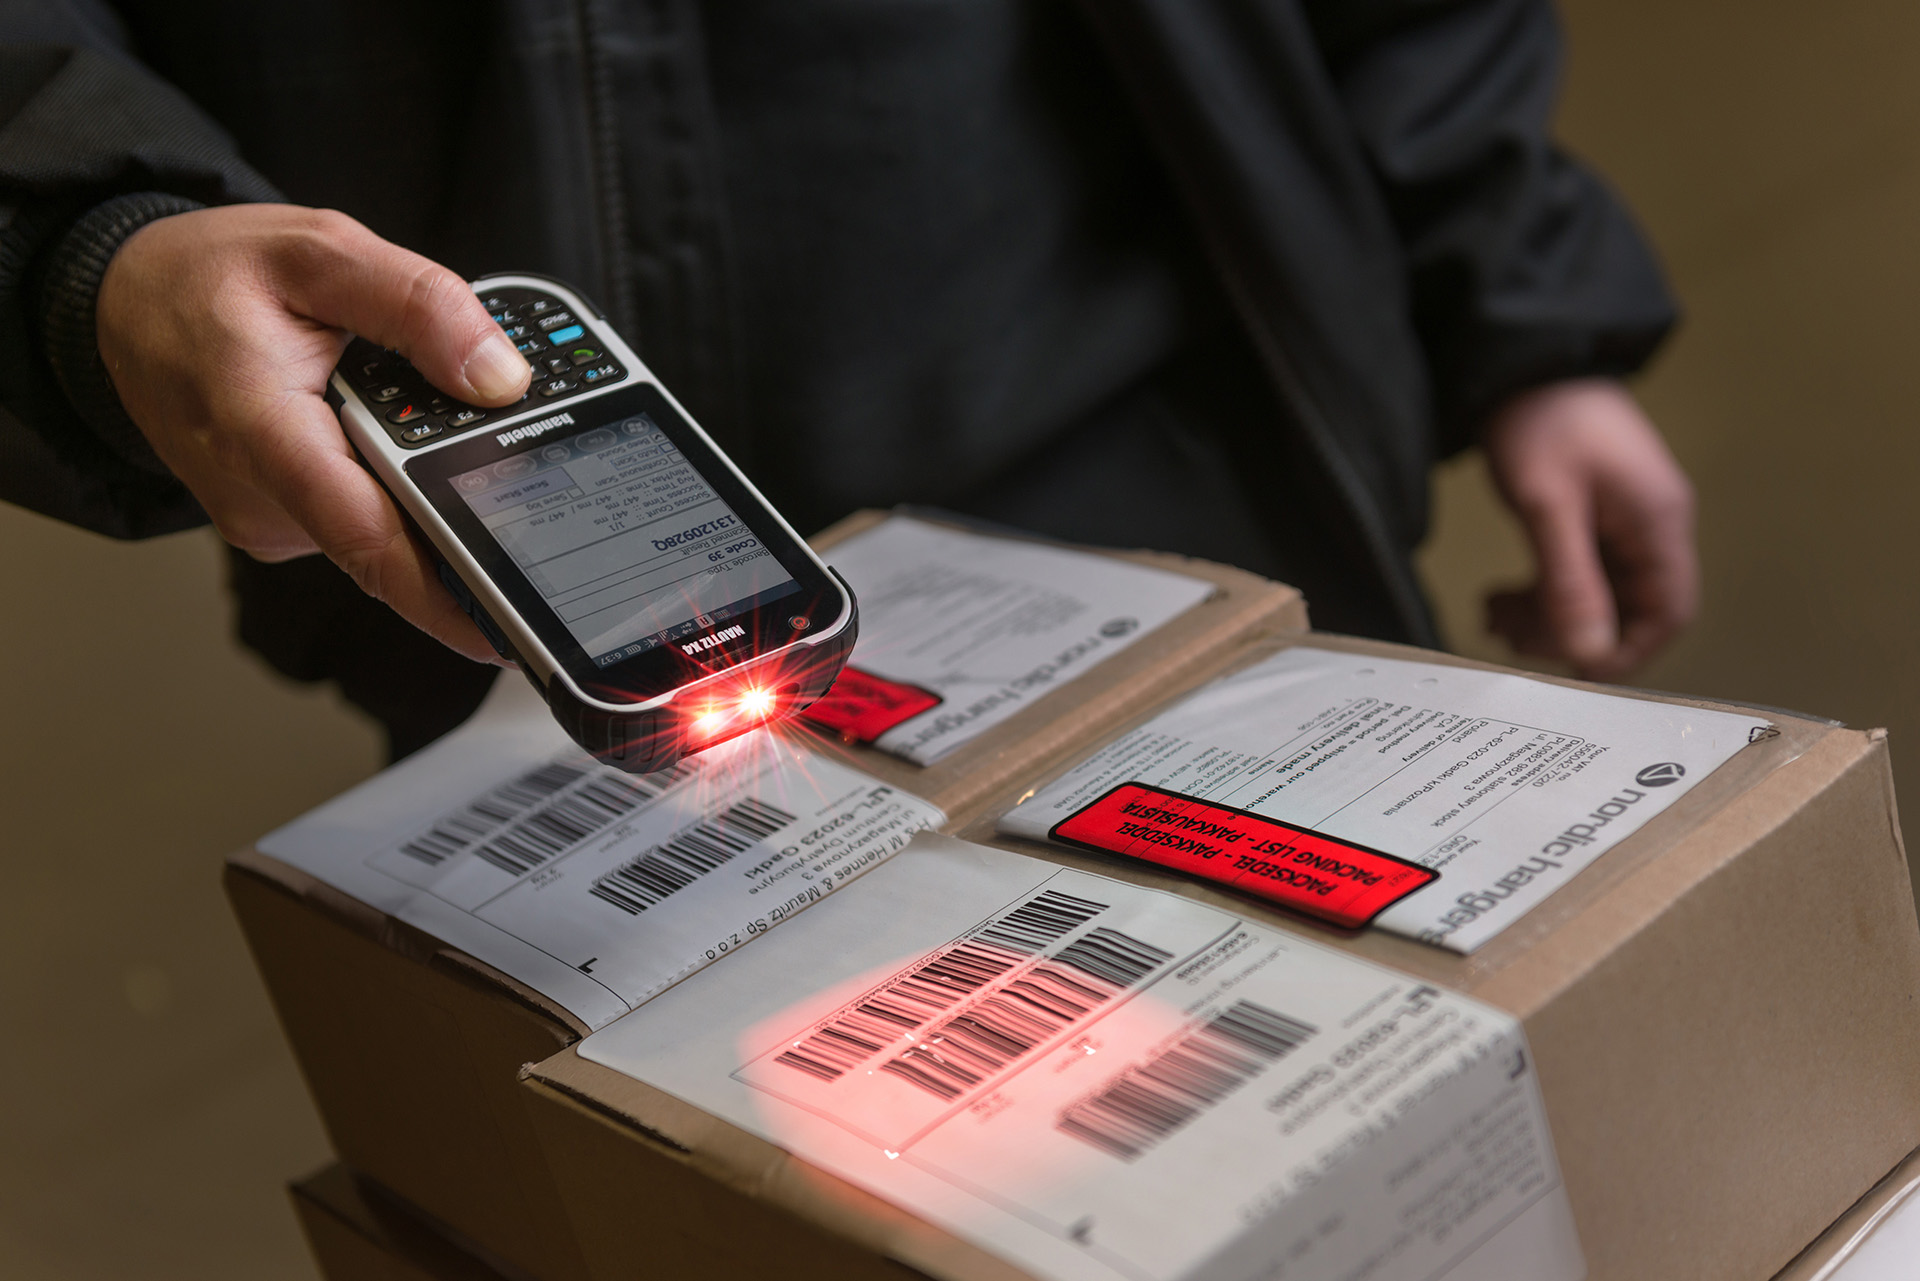 Nautiz-X4-handheld-IP65-warehouse-scanner.jpg